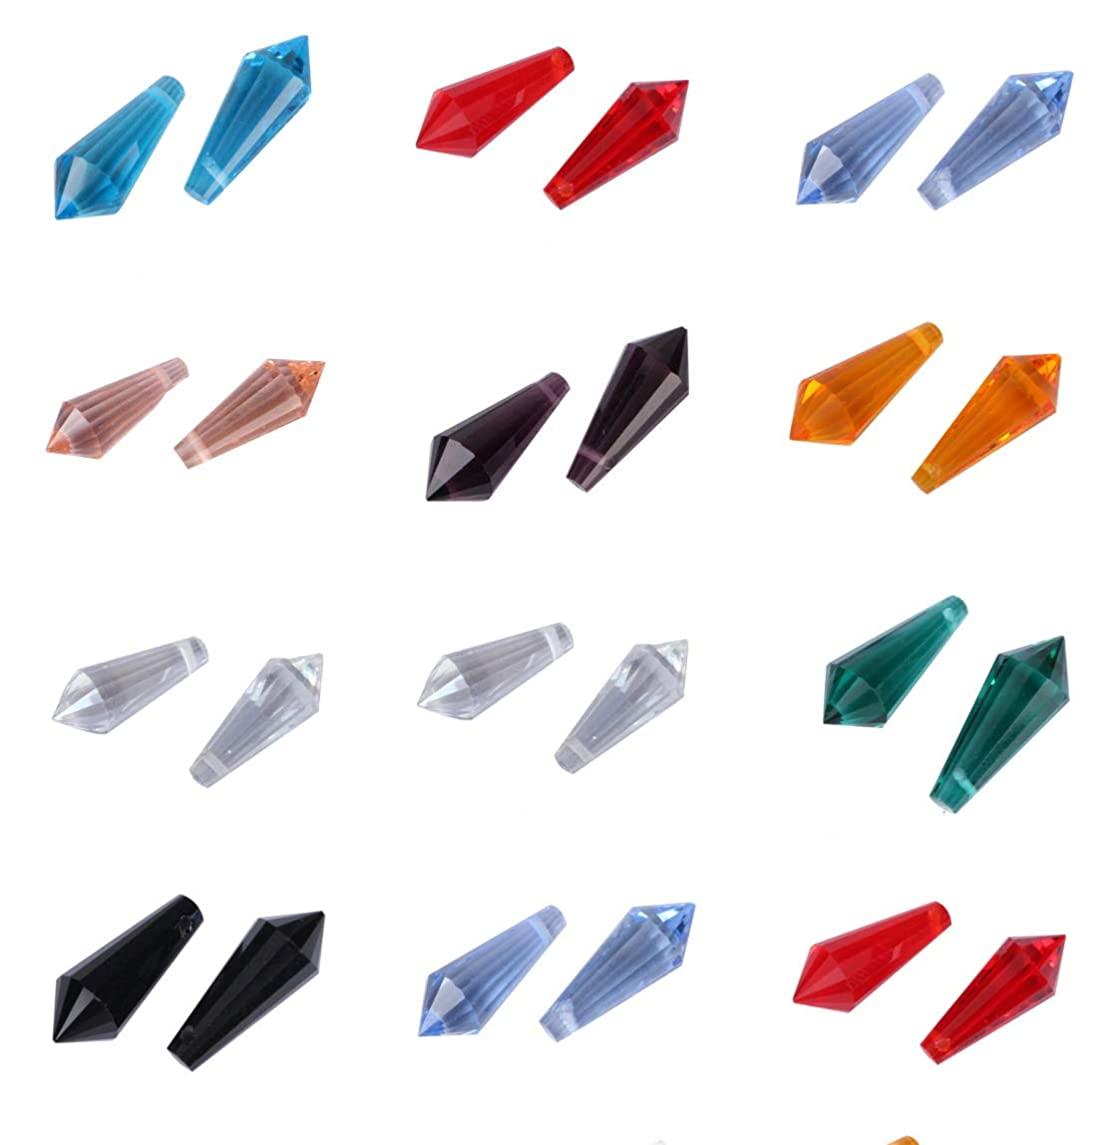 Mixed Lot Top Drilled Teardrop Beads 20mm Pendant Prism Beads (50pcs) for Earrings Bracelet Necklace Anklet Charm Keychain Jewelry Craft Making CCS16